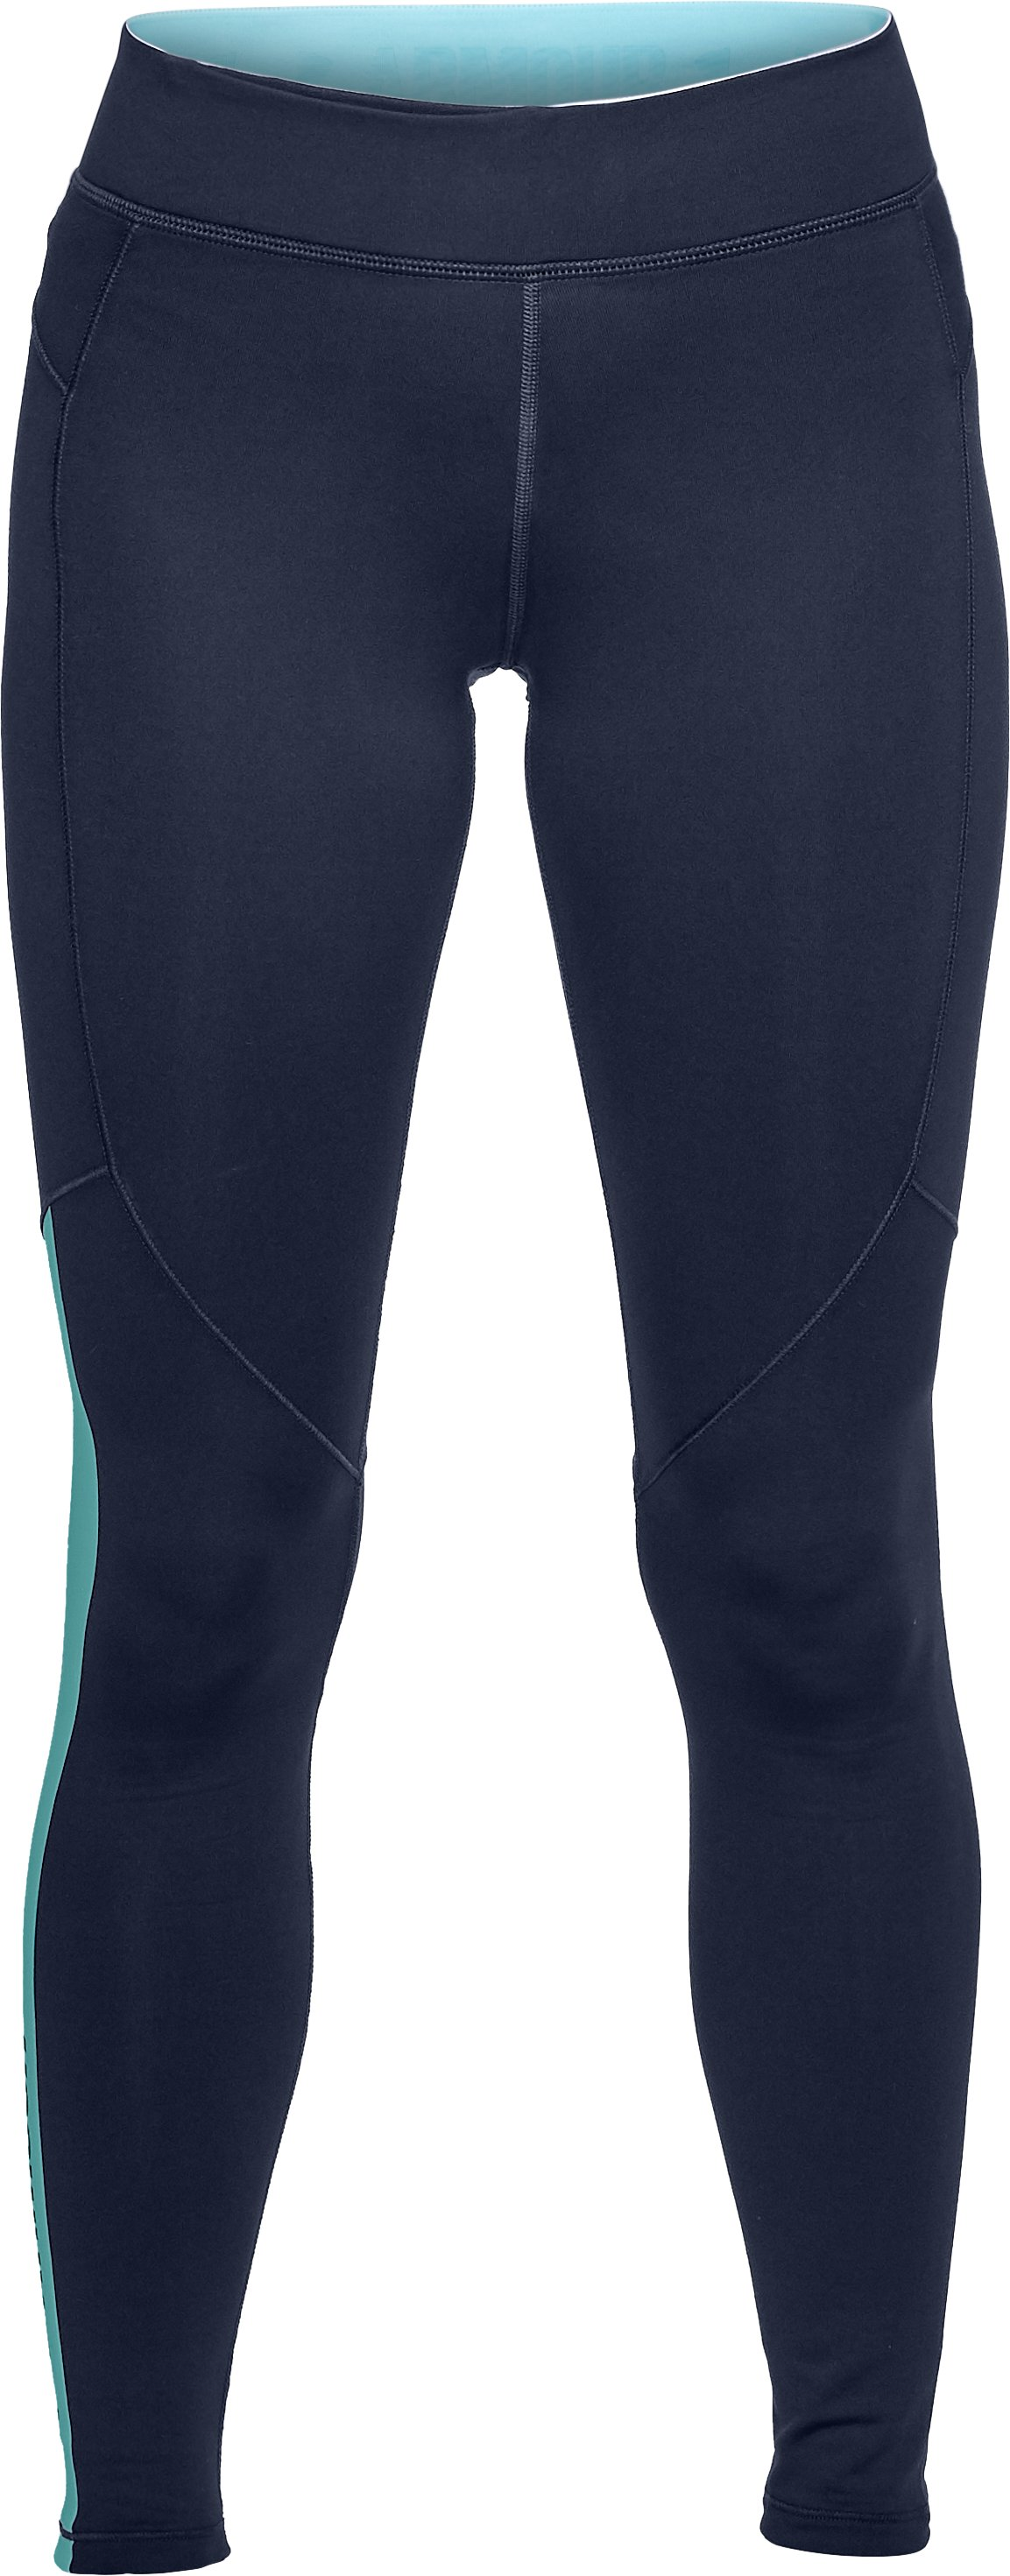 Women's ColdGear® Armour Graphic Leggings, Midnight Navy,